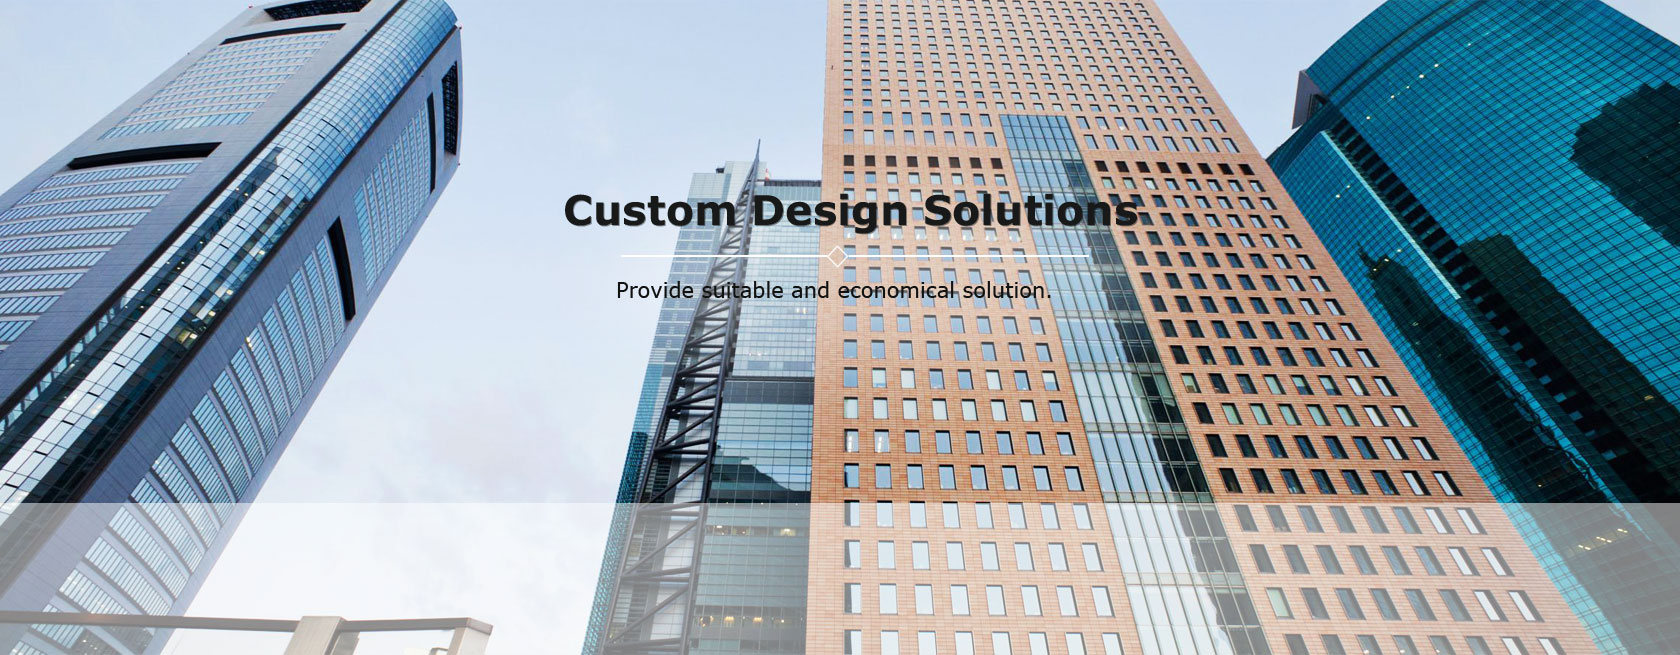 Custom design solutions. Provide suitable and economical solution.